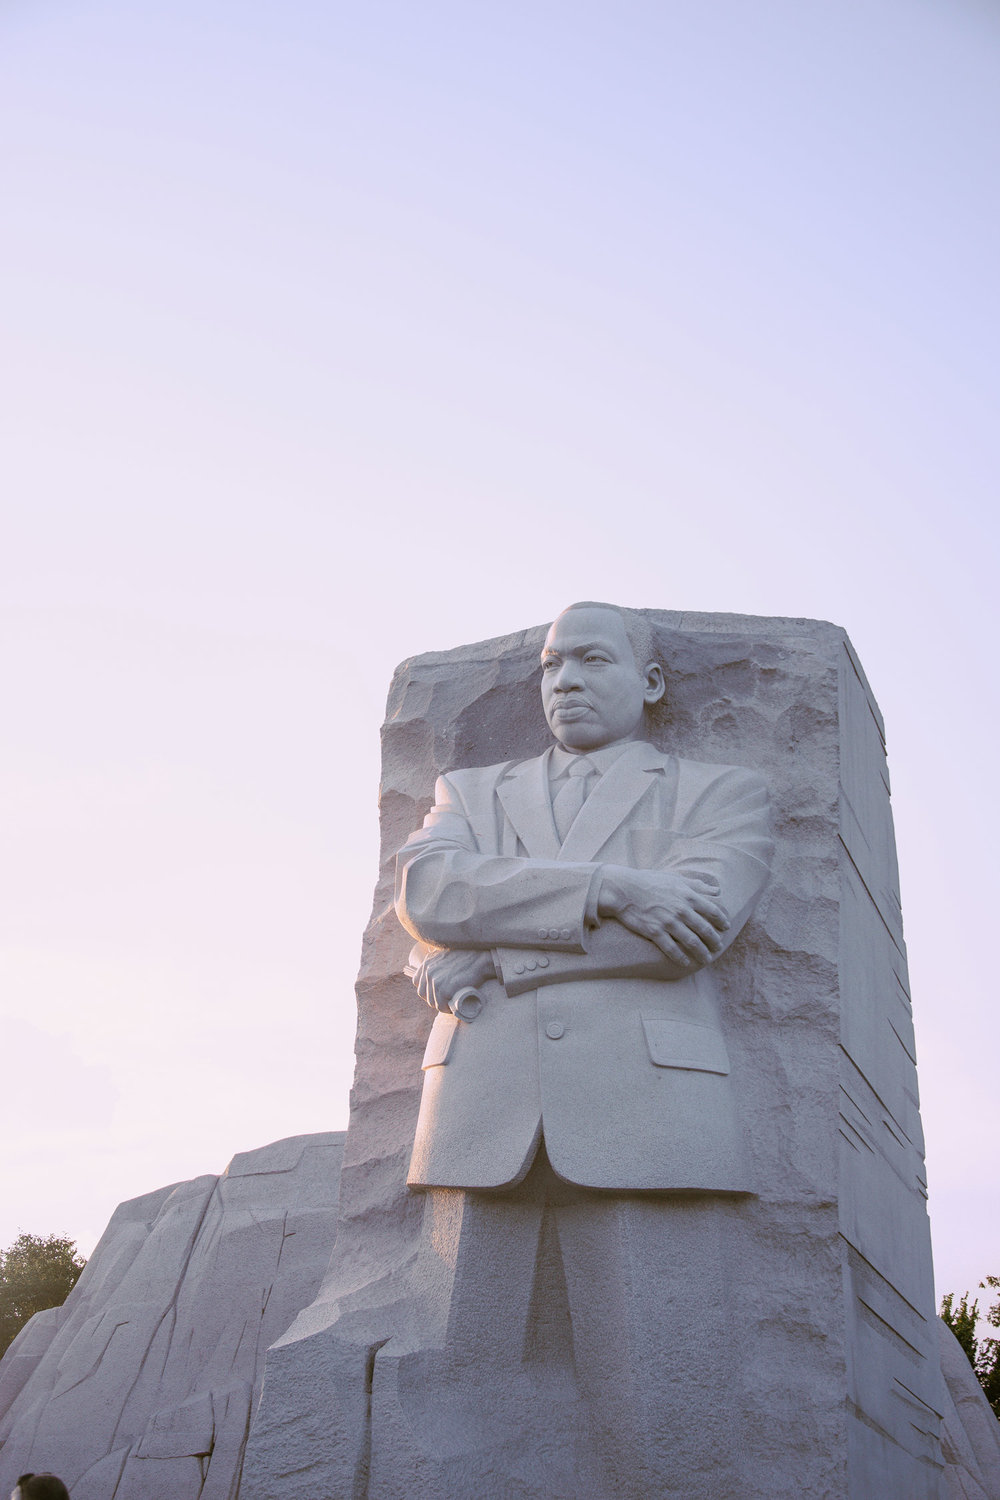 Martin_Luther_King_Jr_Memorial_Washington_DC_2018_Ruo_Ling_Lu.jpg